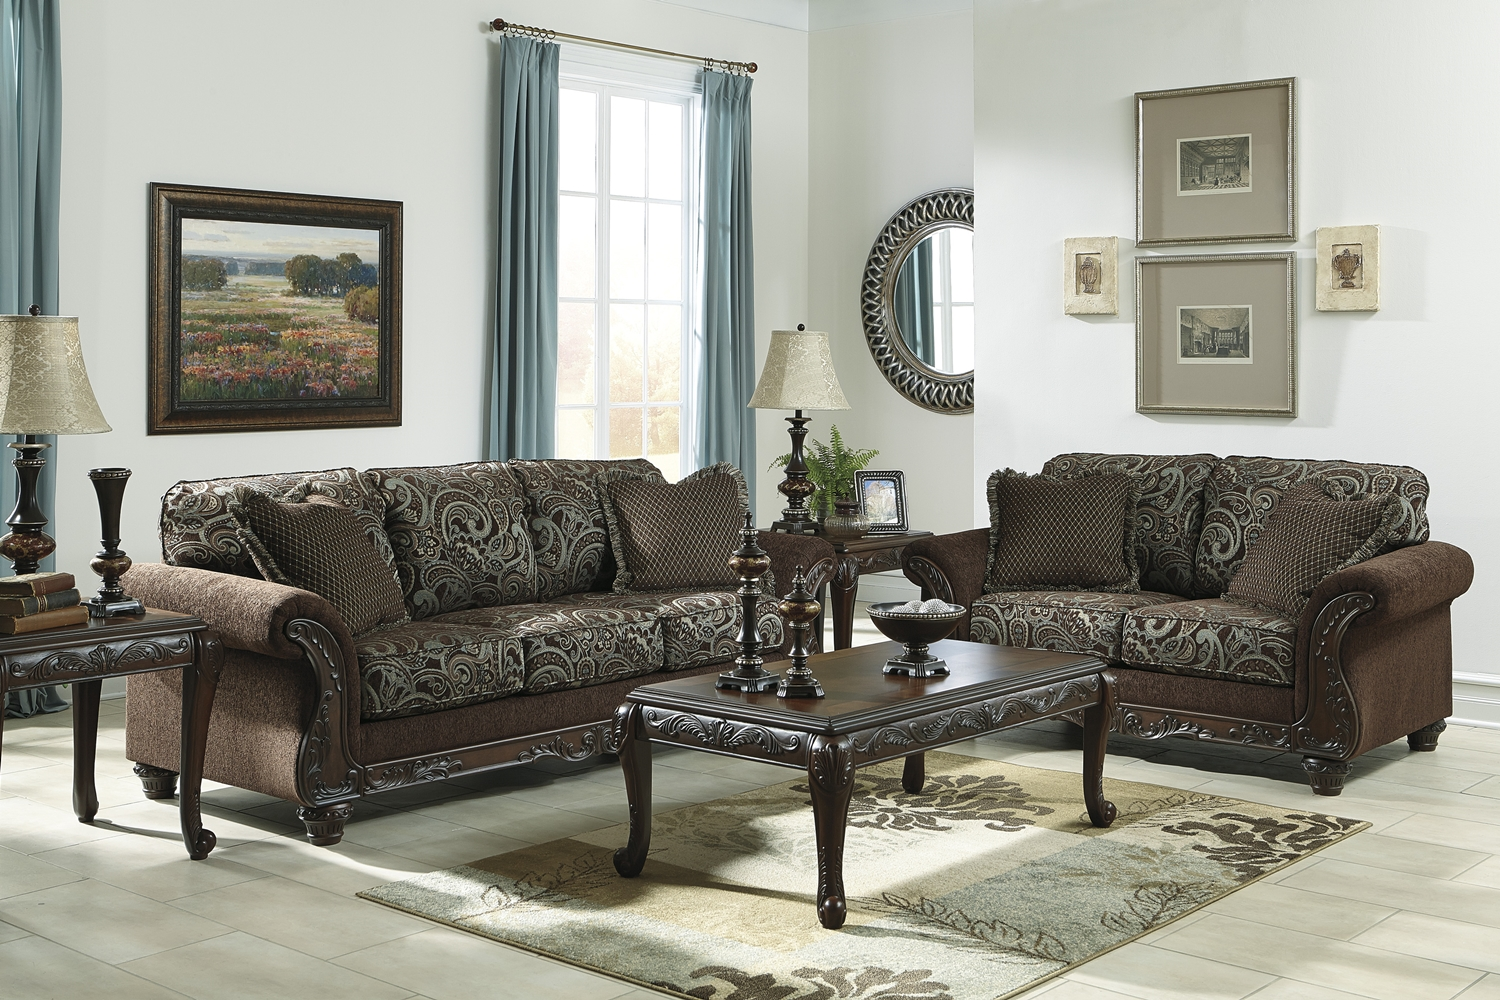 Wood trim living room furniture sets moreover used schnadig furniture